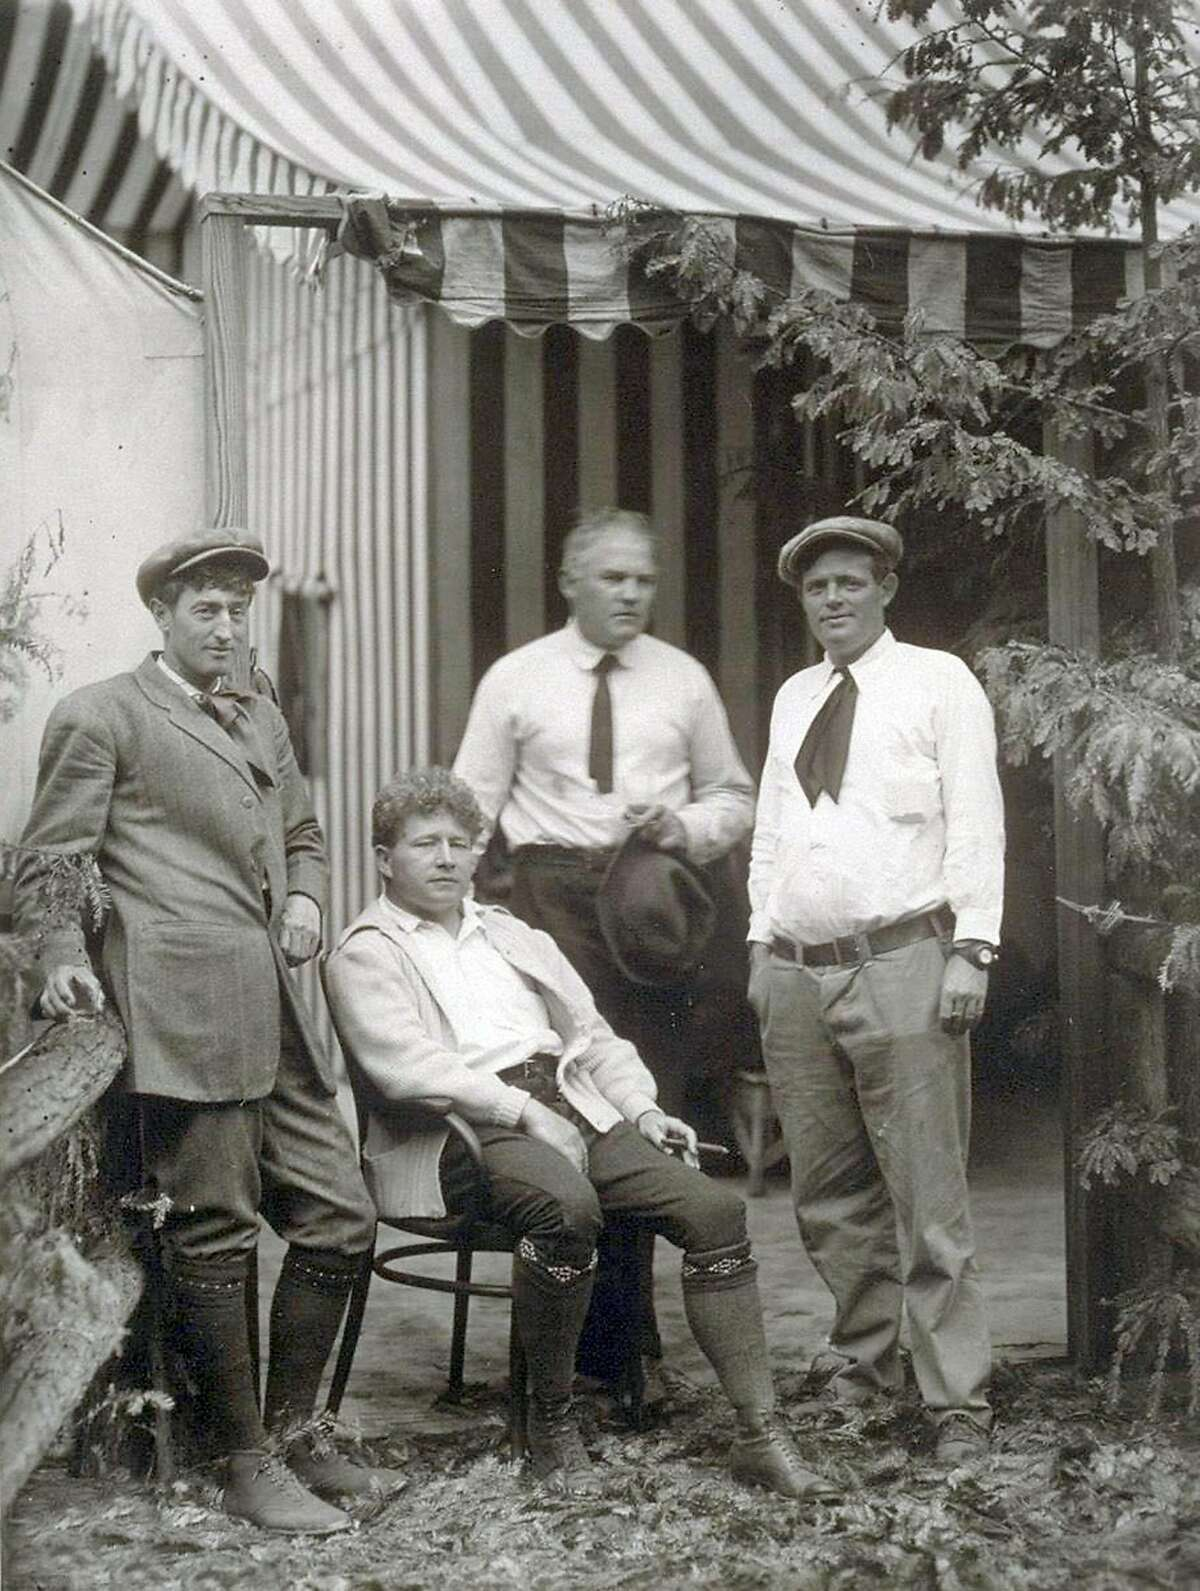 Poet George Sterling, a man of many contradictions (left), hangs out with journalist Jimmy Hopper and authors Harry Leon Wilson and Jack London at the Bohemian Grove in 1913.